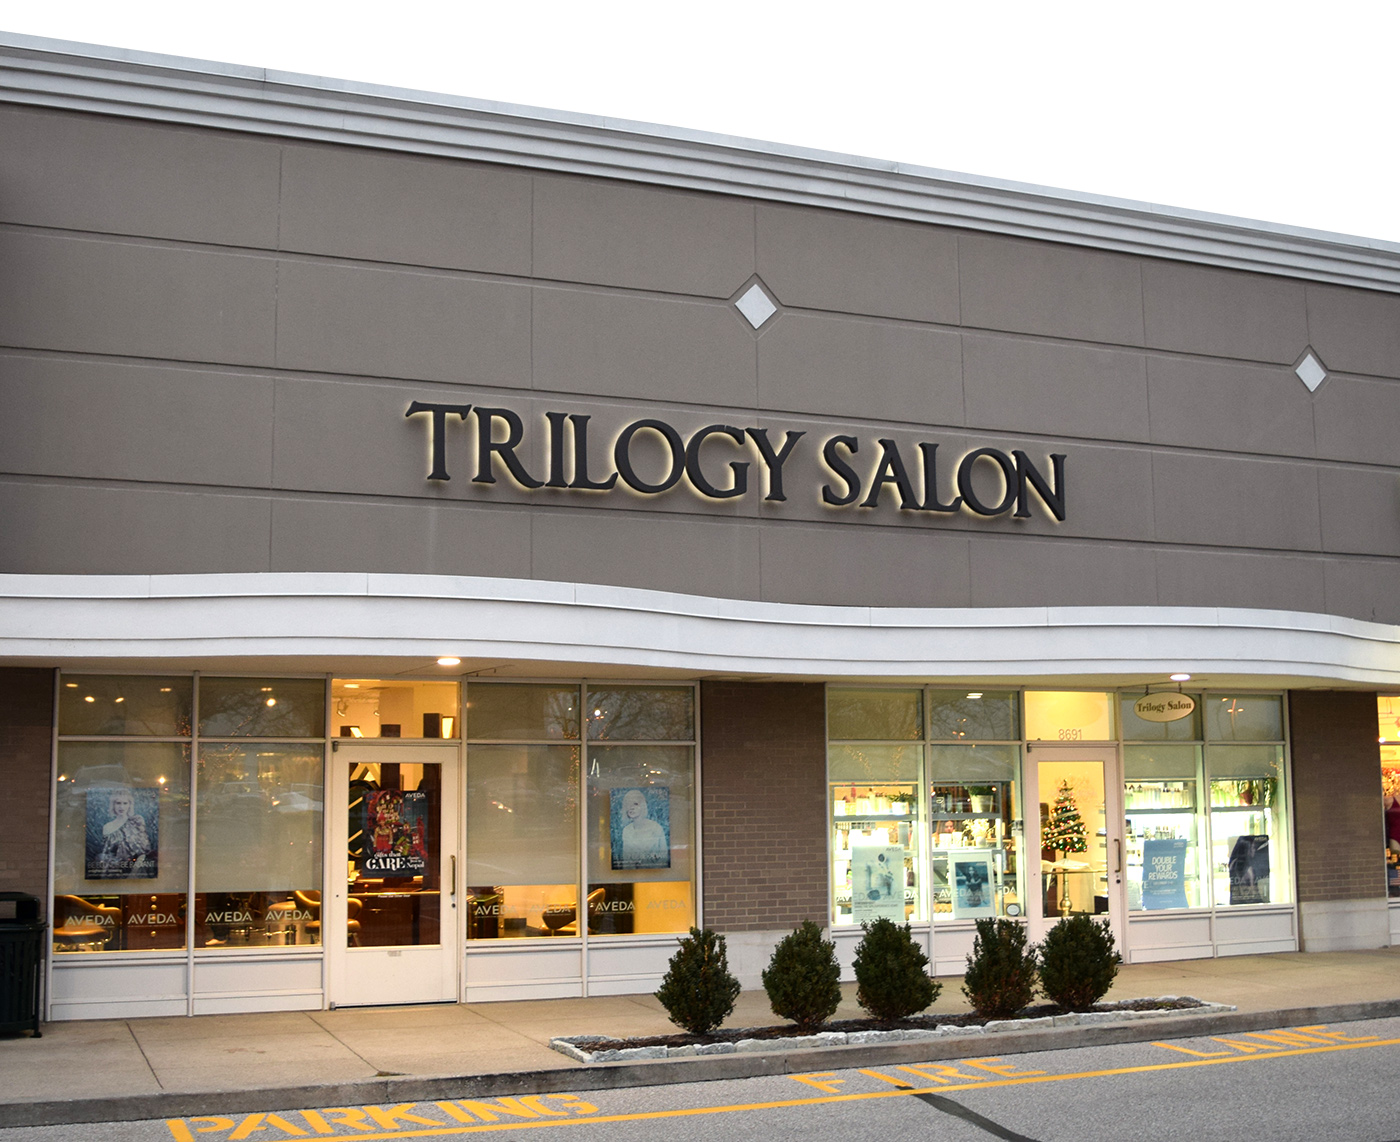 Trilogy Salon Exterior